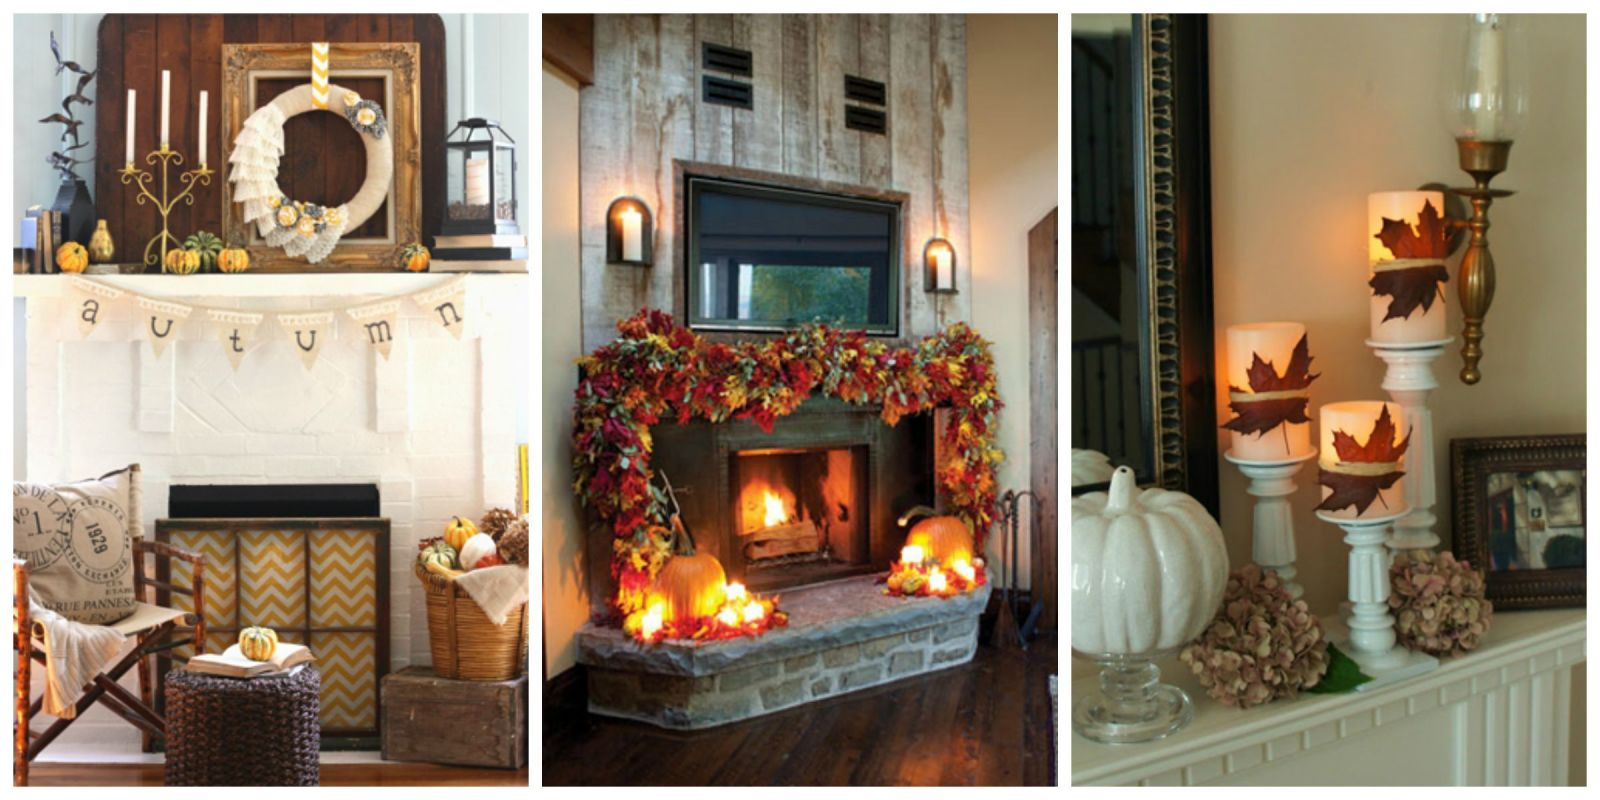 35 fall mantel decorating ideas halloween mantel decorations - Fall Halloween Decorations